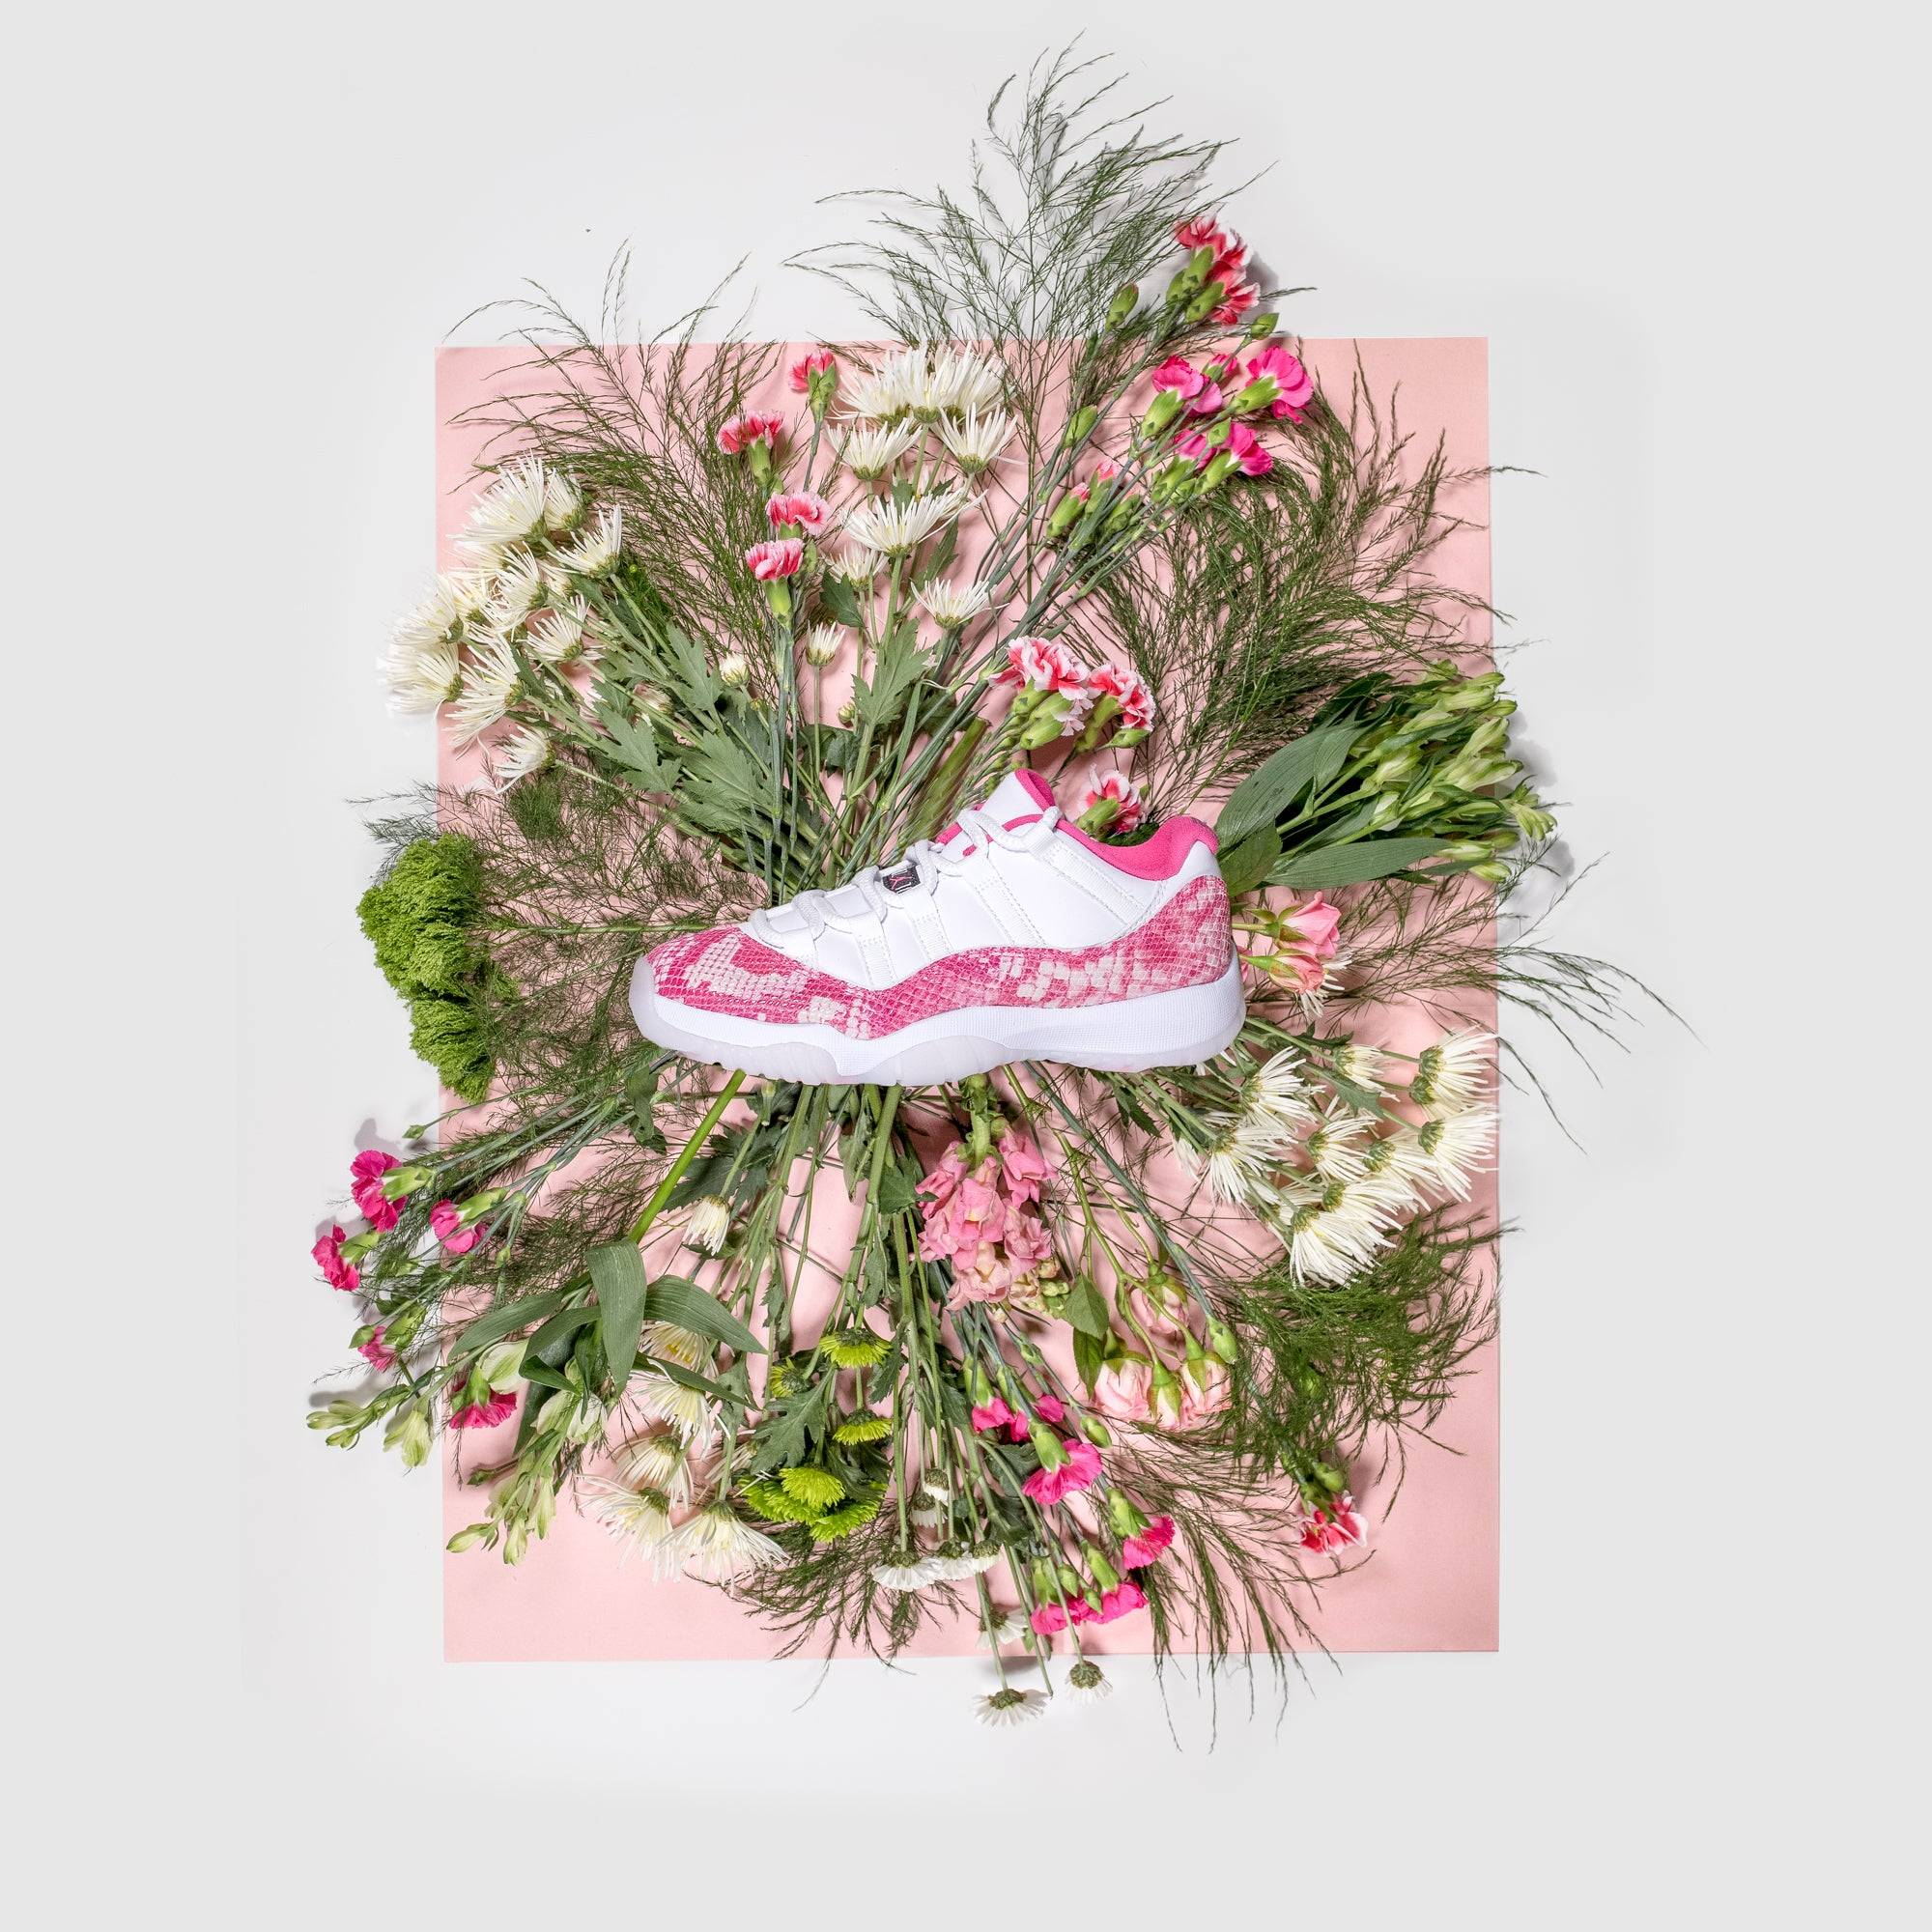 fa115607f59 The Air Jordan Women's XI Low Snakeskin is the first AJXI Low to release in  full women's sizing. Releasing May 7th. Enter the draw via EB Releases.